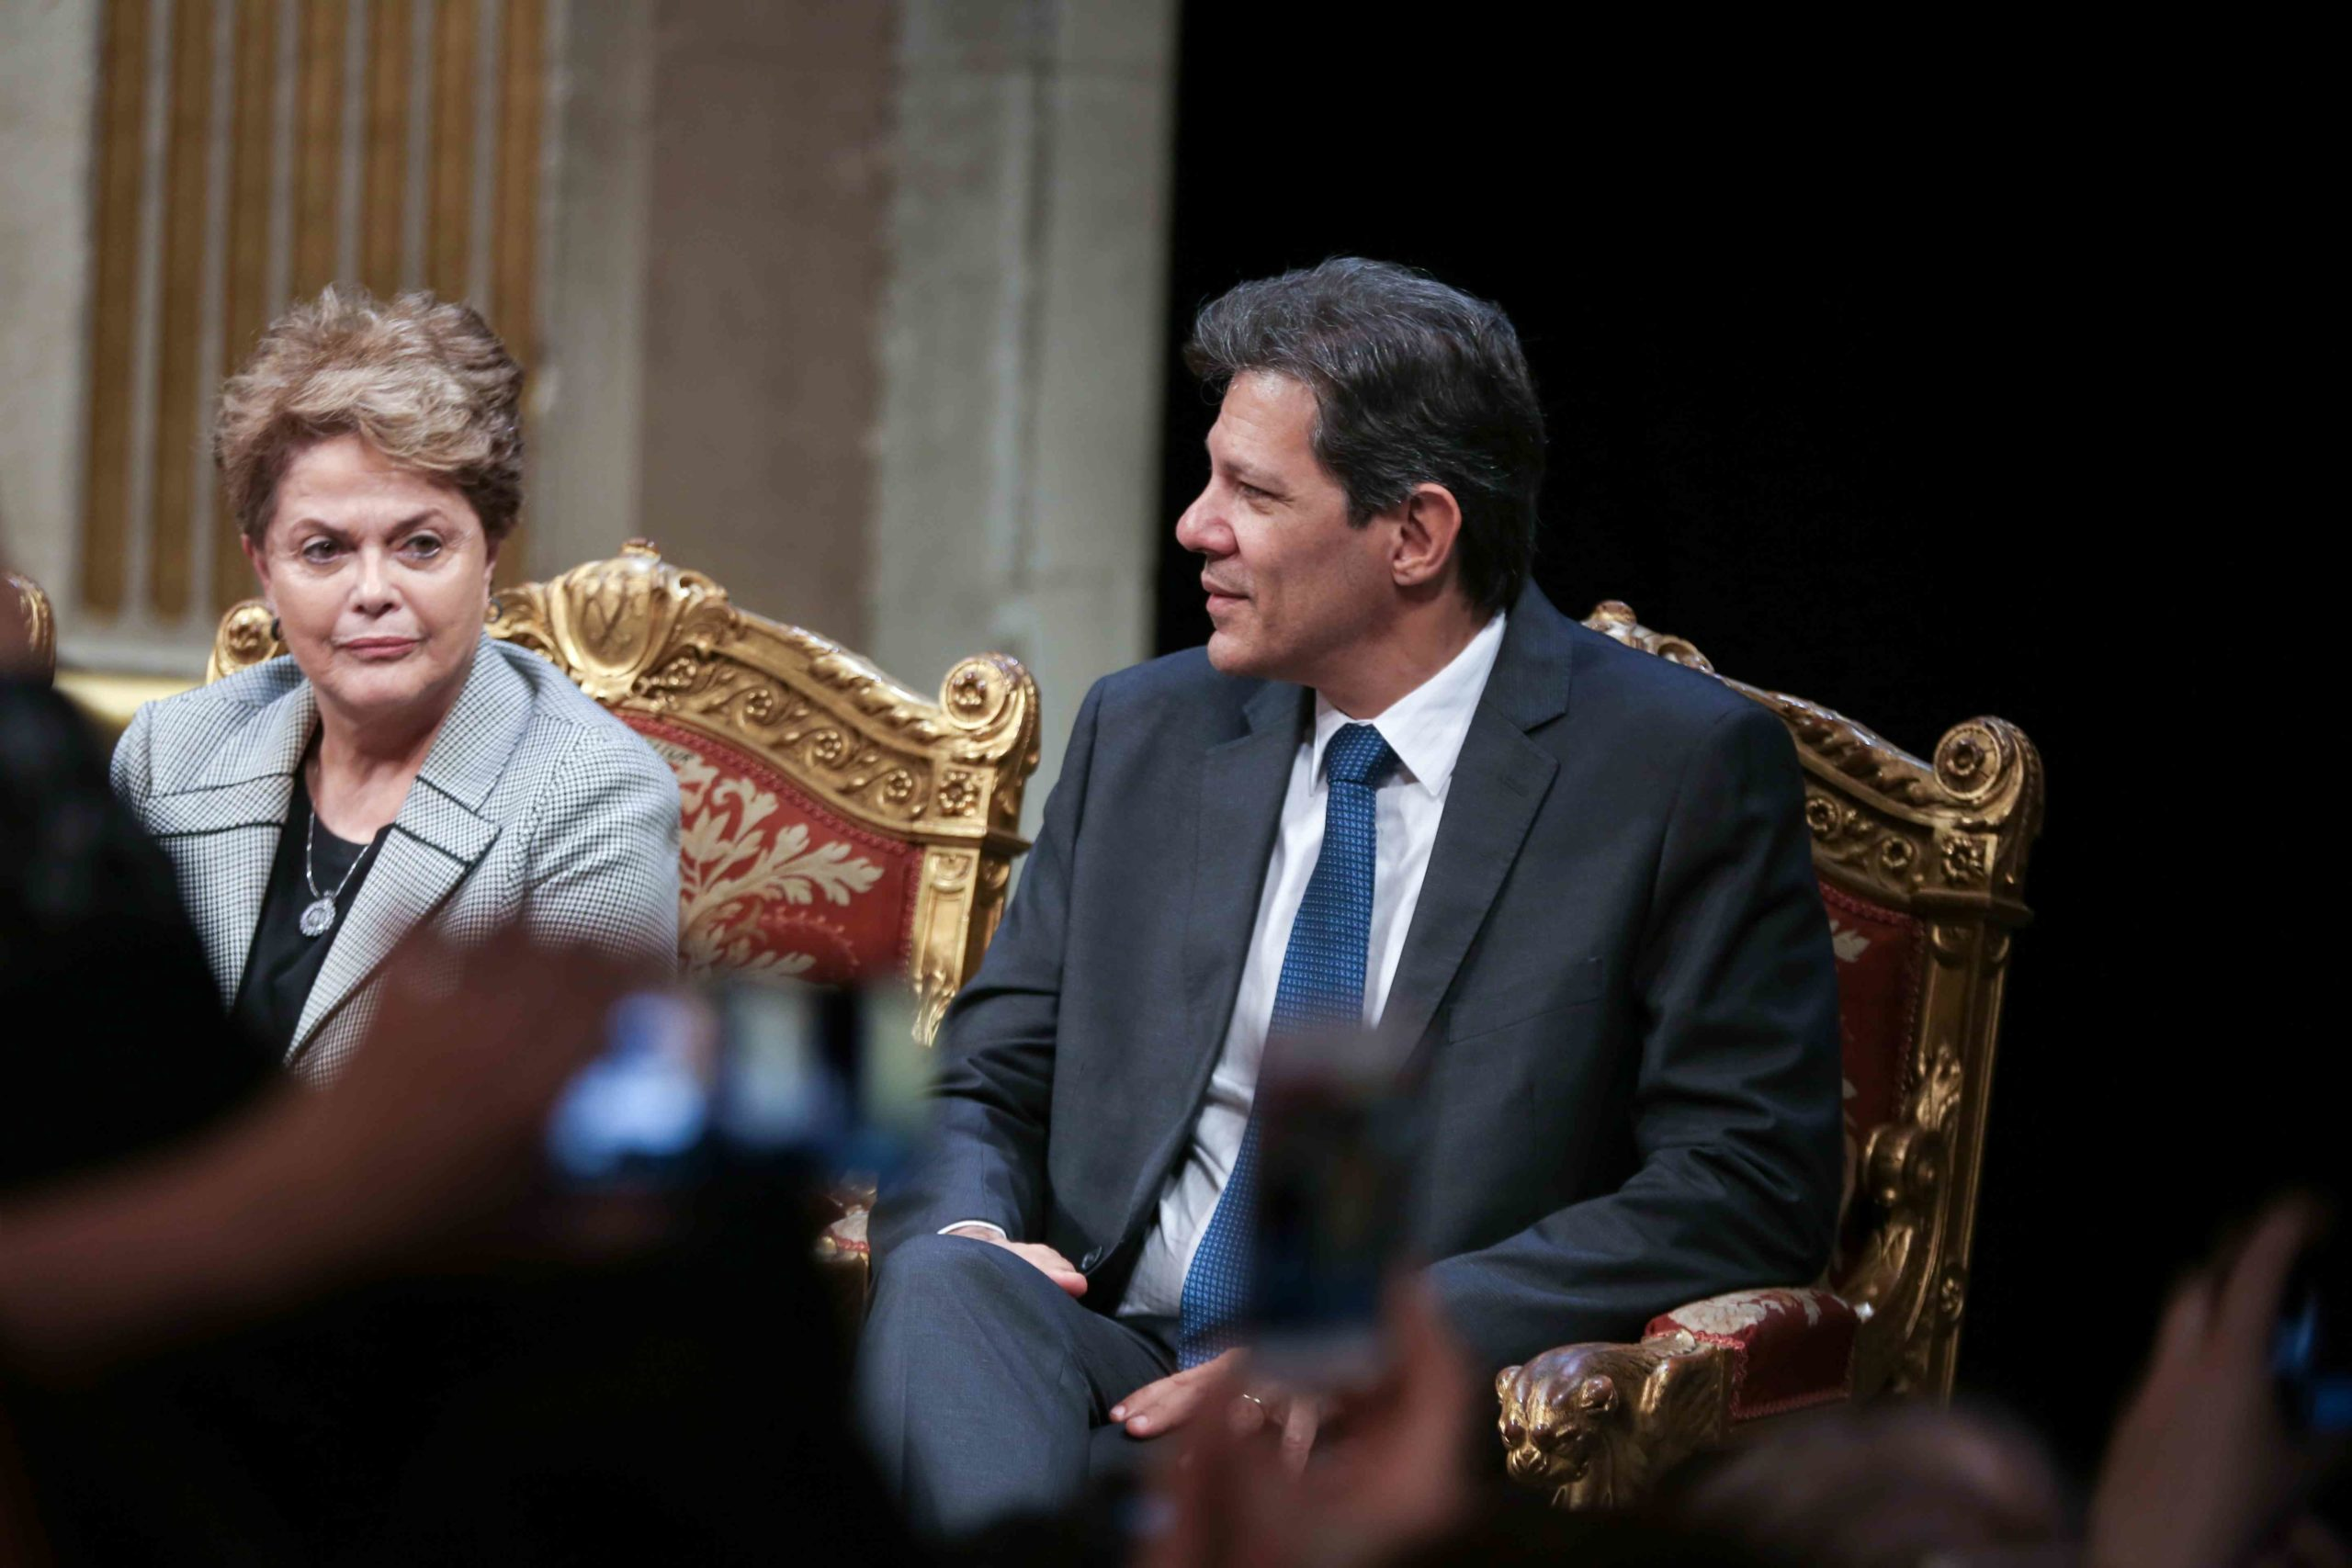 (Lto R)  Former Brazilian president Dilma Rousseff and former Sao Paolo Mayor Fernando Hadda take part in a ceremony at the City Hall of Paris, on March 2, 2020, during wich the President Lula da Silva was named  honorary citizen of the city of Paris.